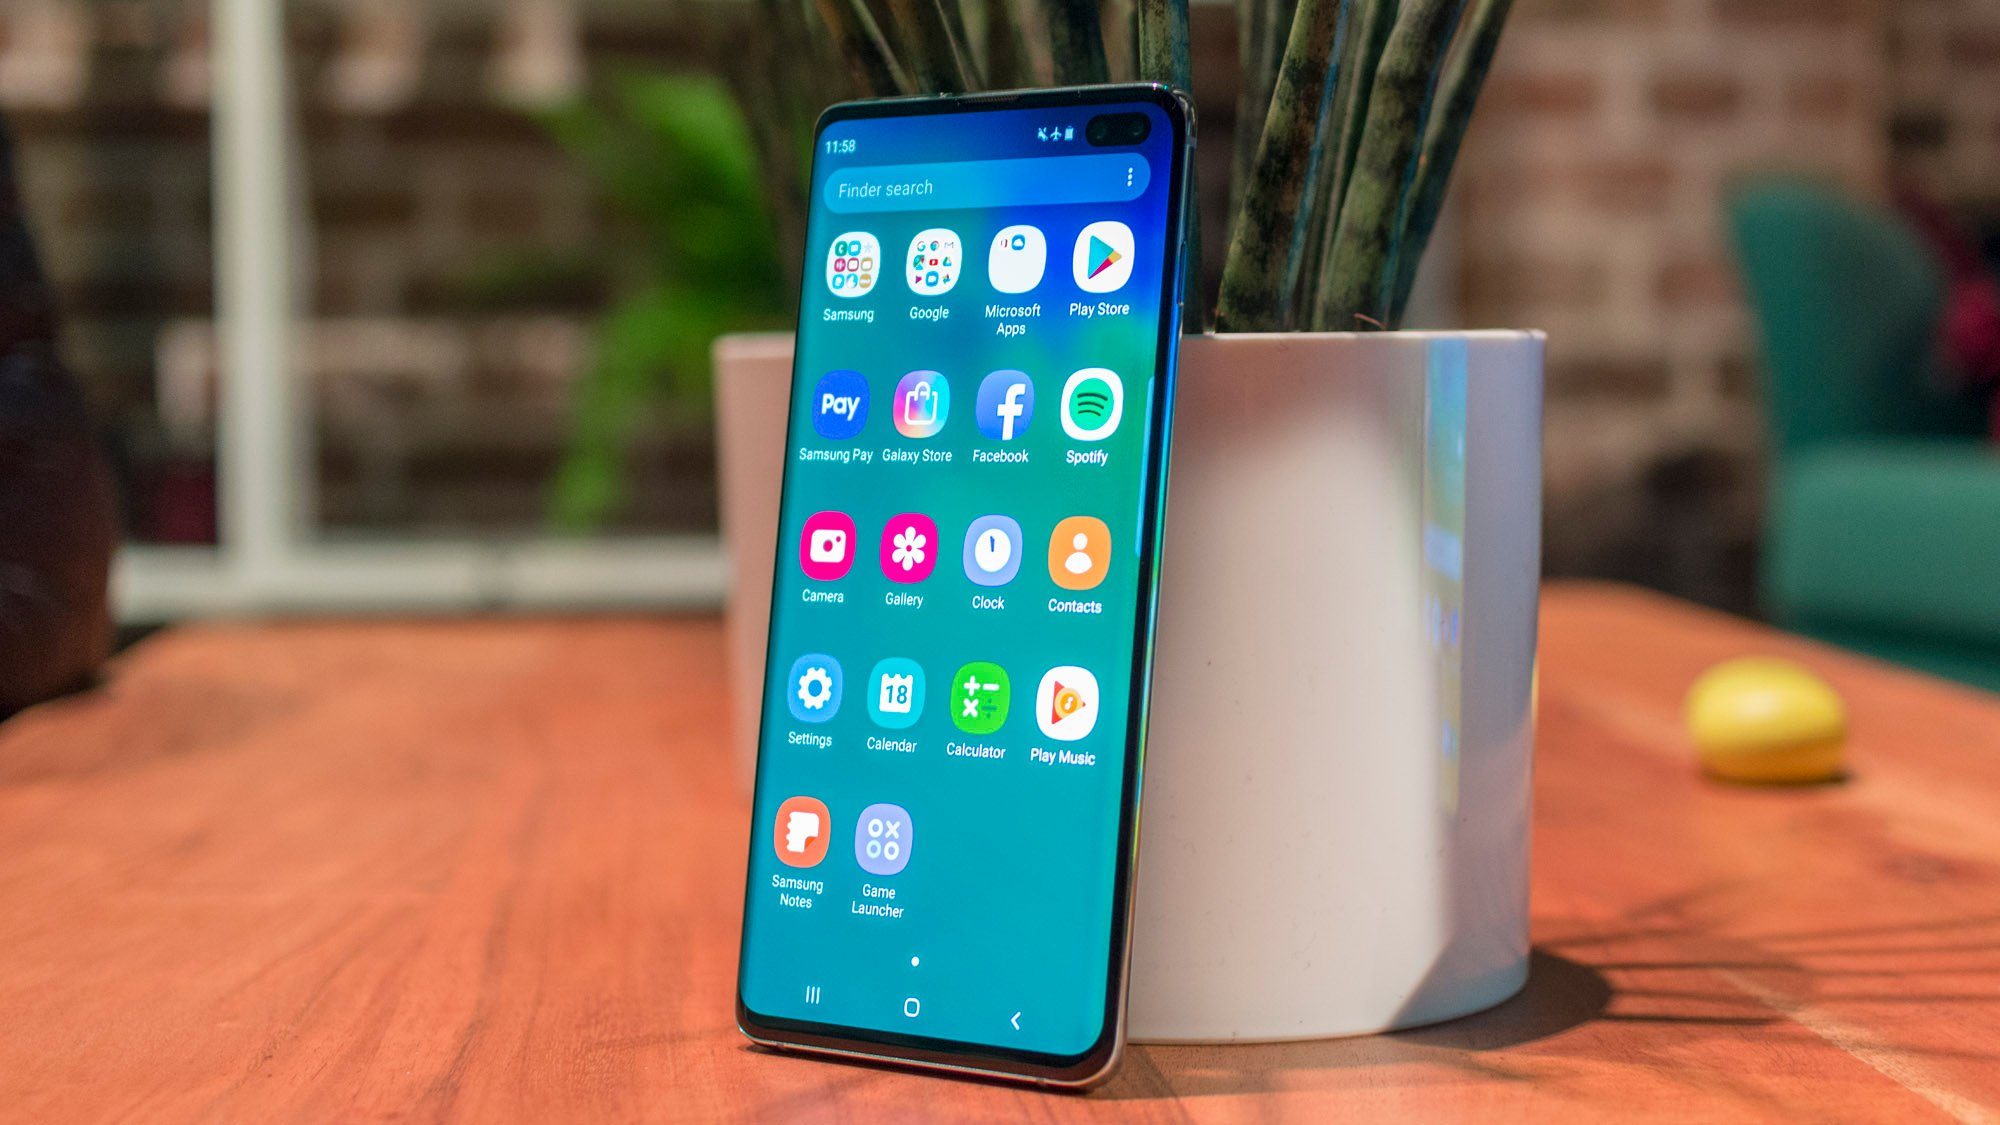 Samsung all mobile phone price in india 2020